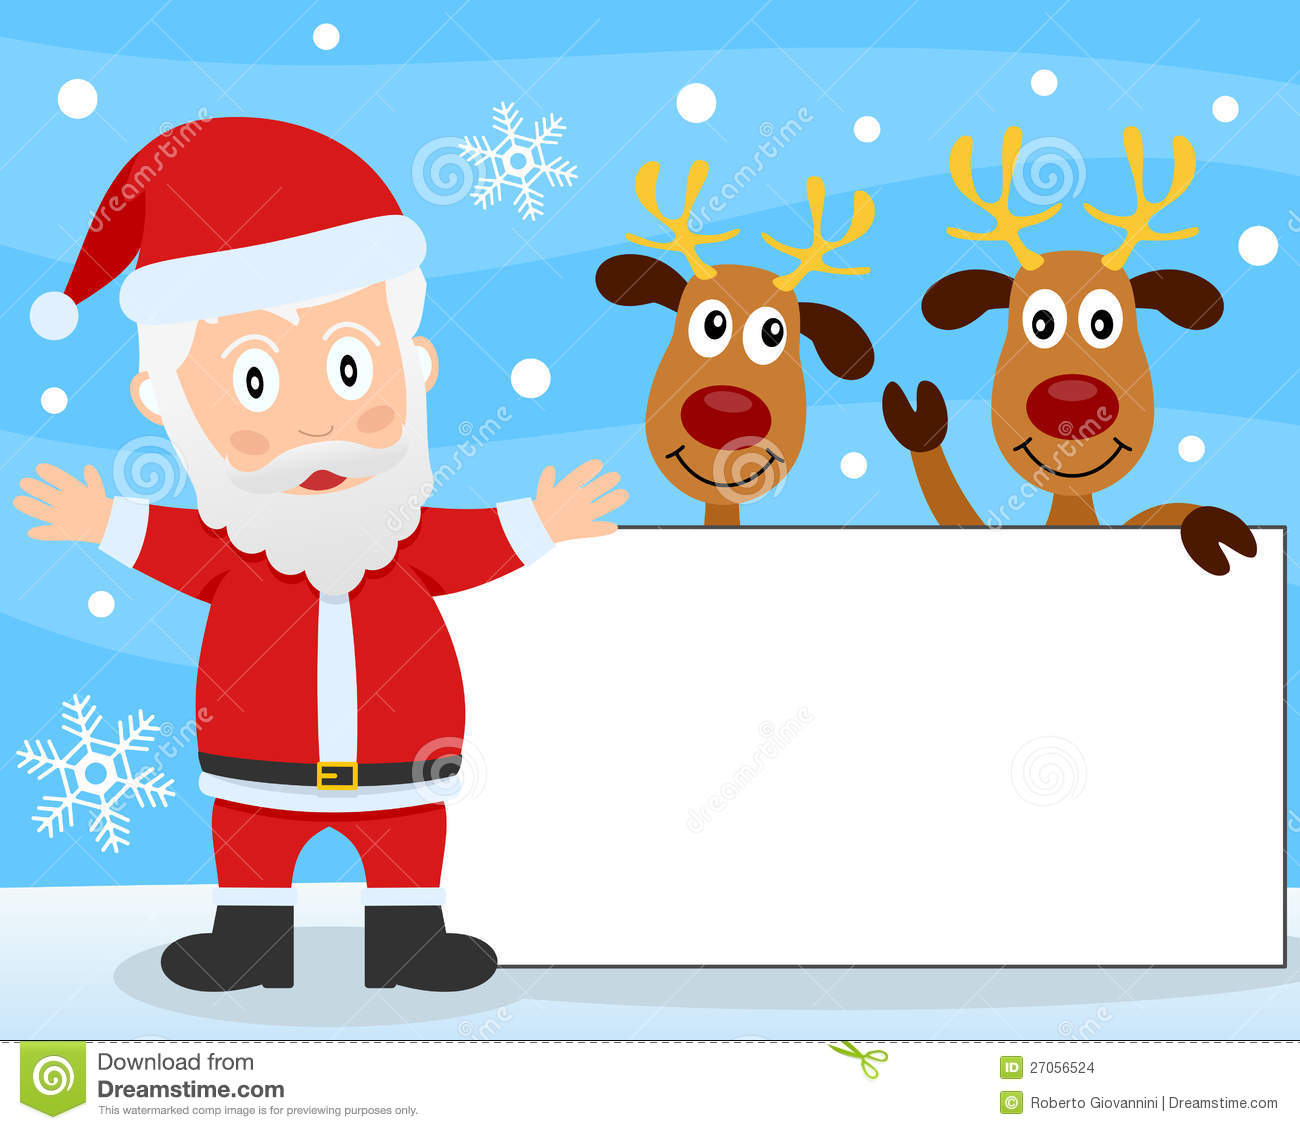 Santa claus and reindeer banner stock vector